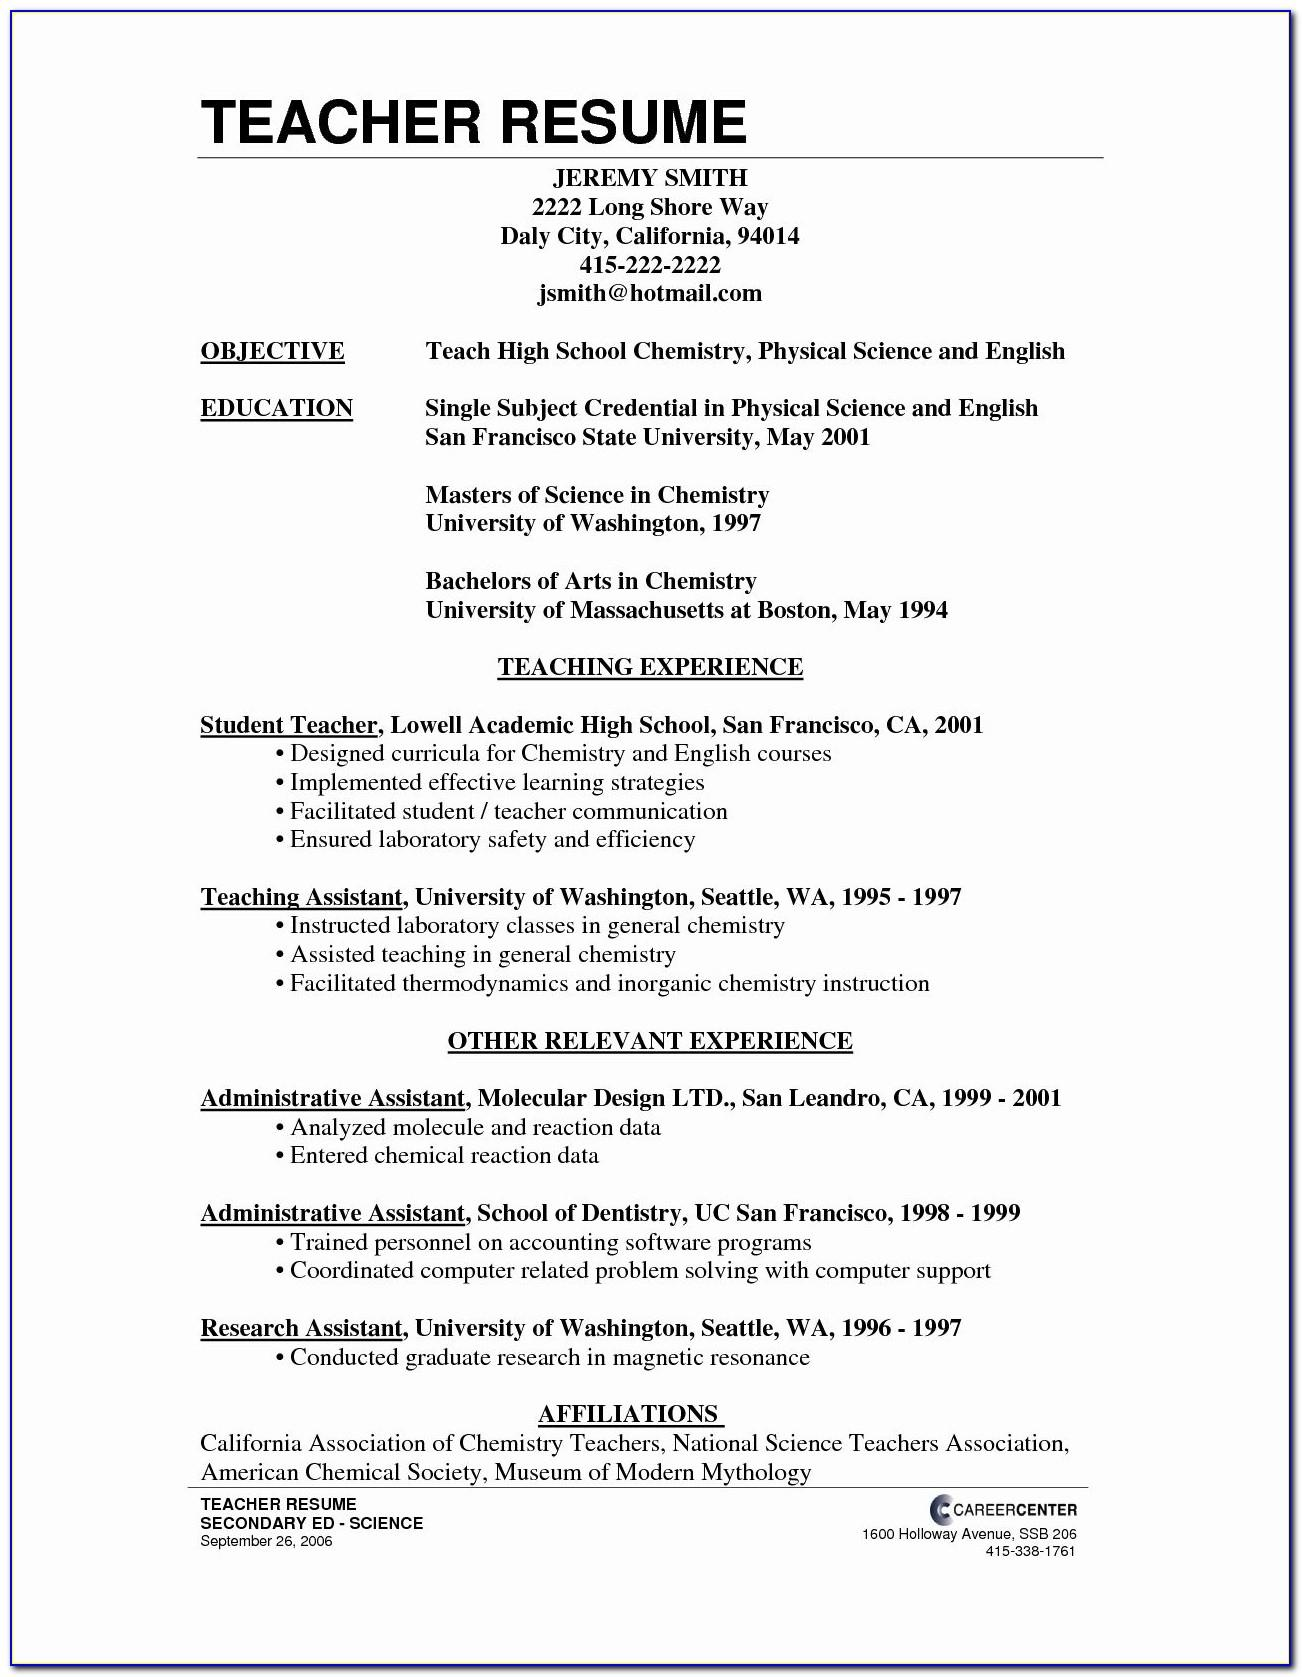 Resume Format For Teaching Job In School Pdf